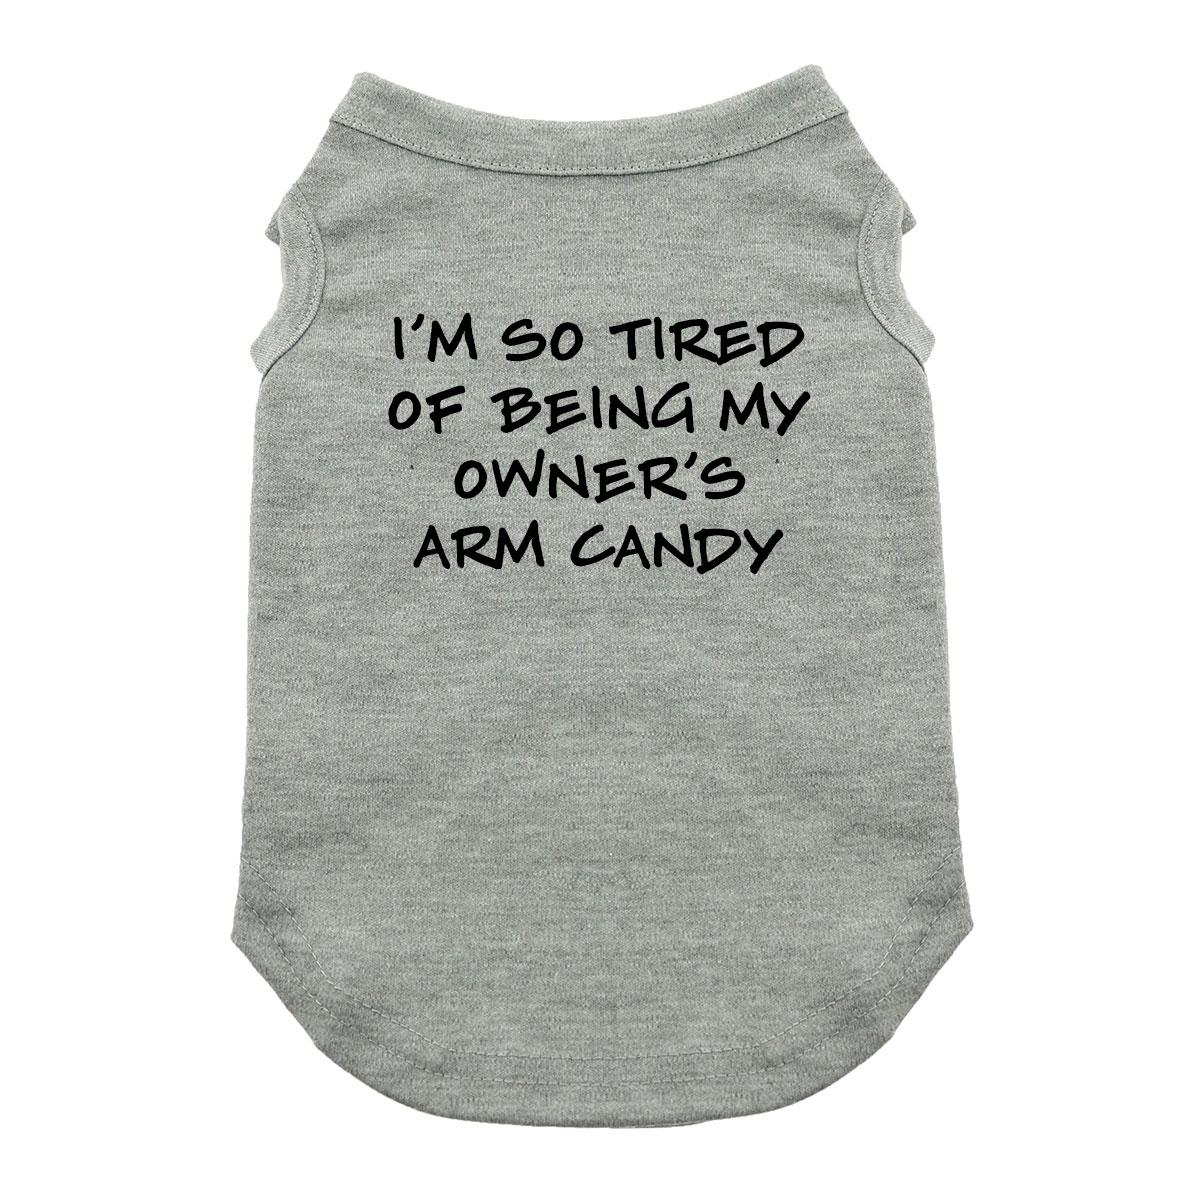 Tired of Being My Owner's Arm Candy Dog Shirt - Gray